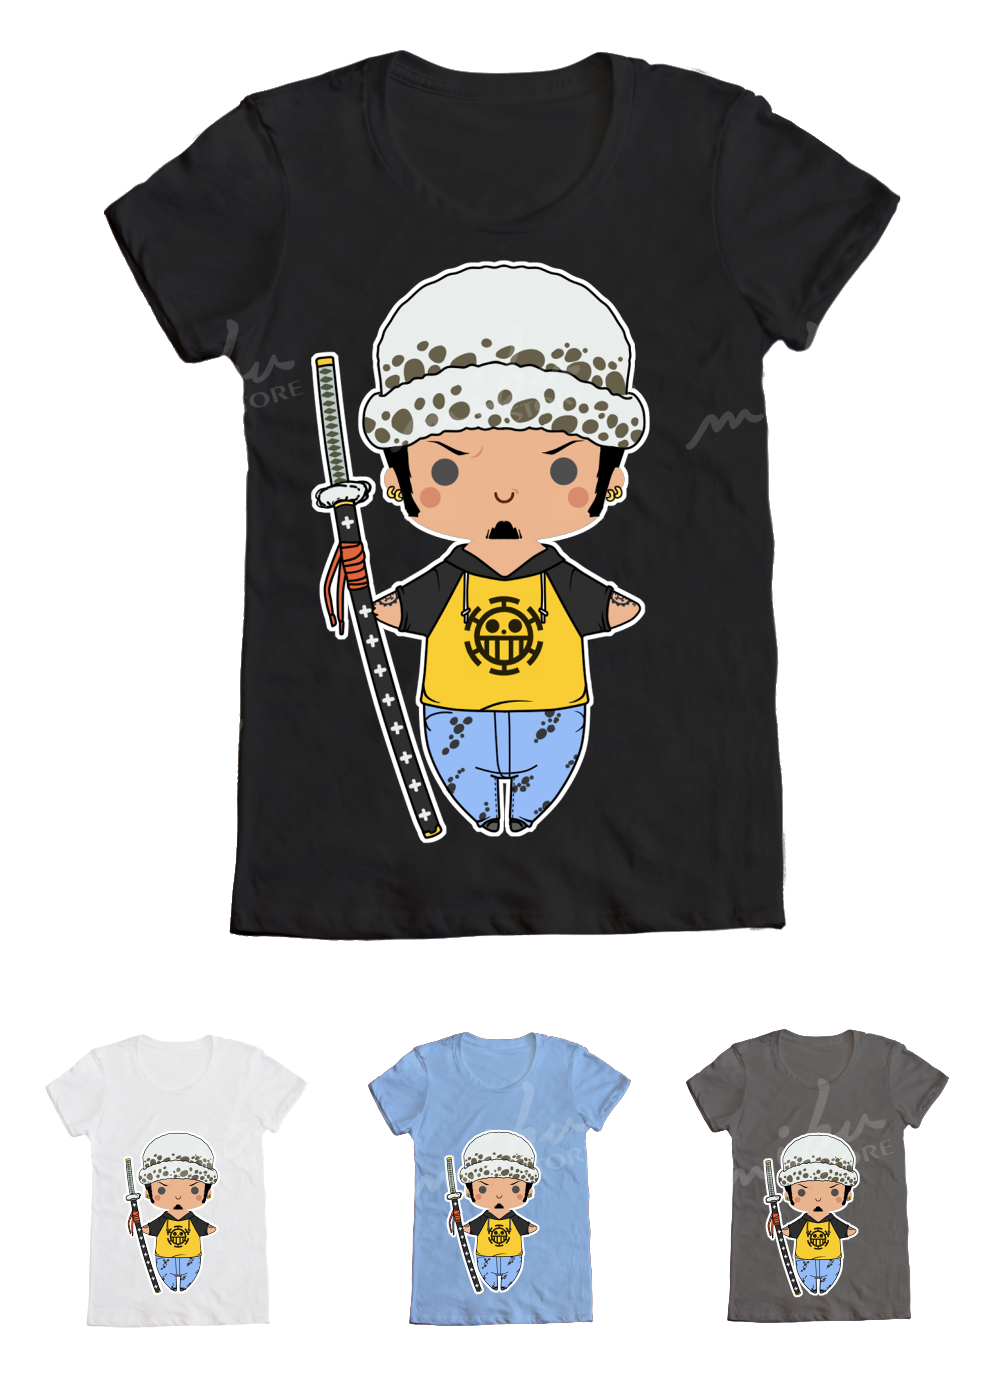 Mibustore Custom T Shirts One Piece Trafalgar Law T Shirt